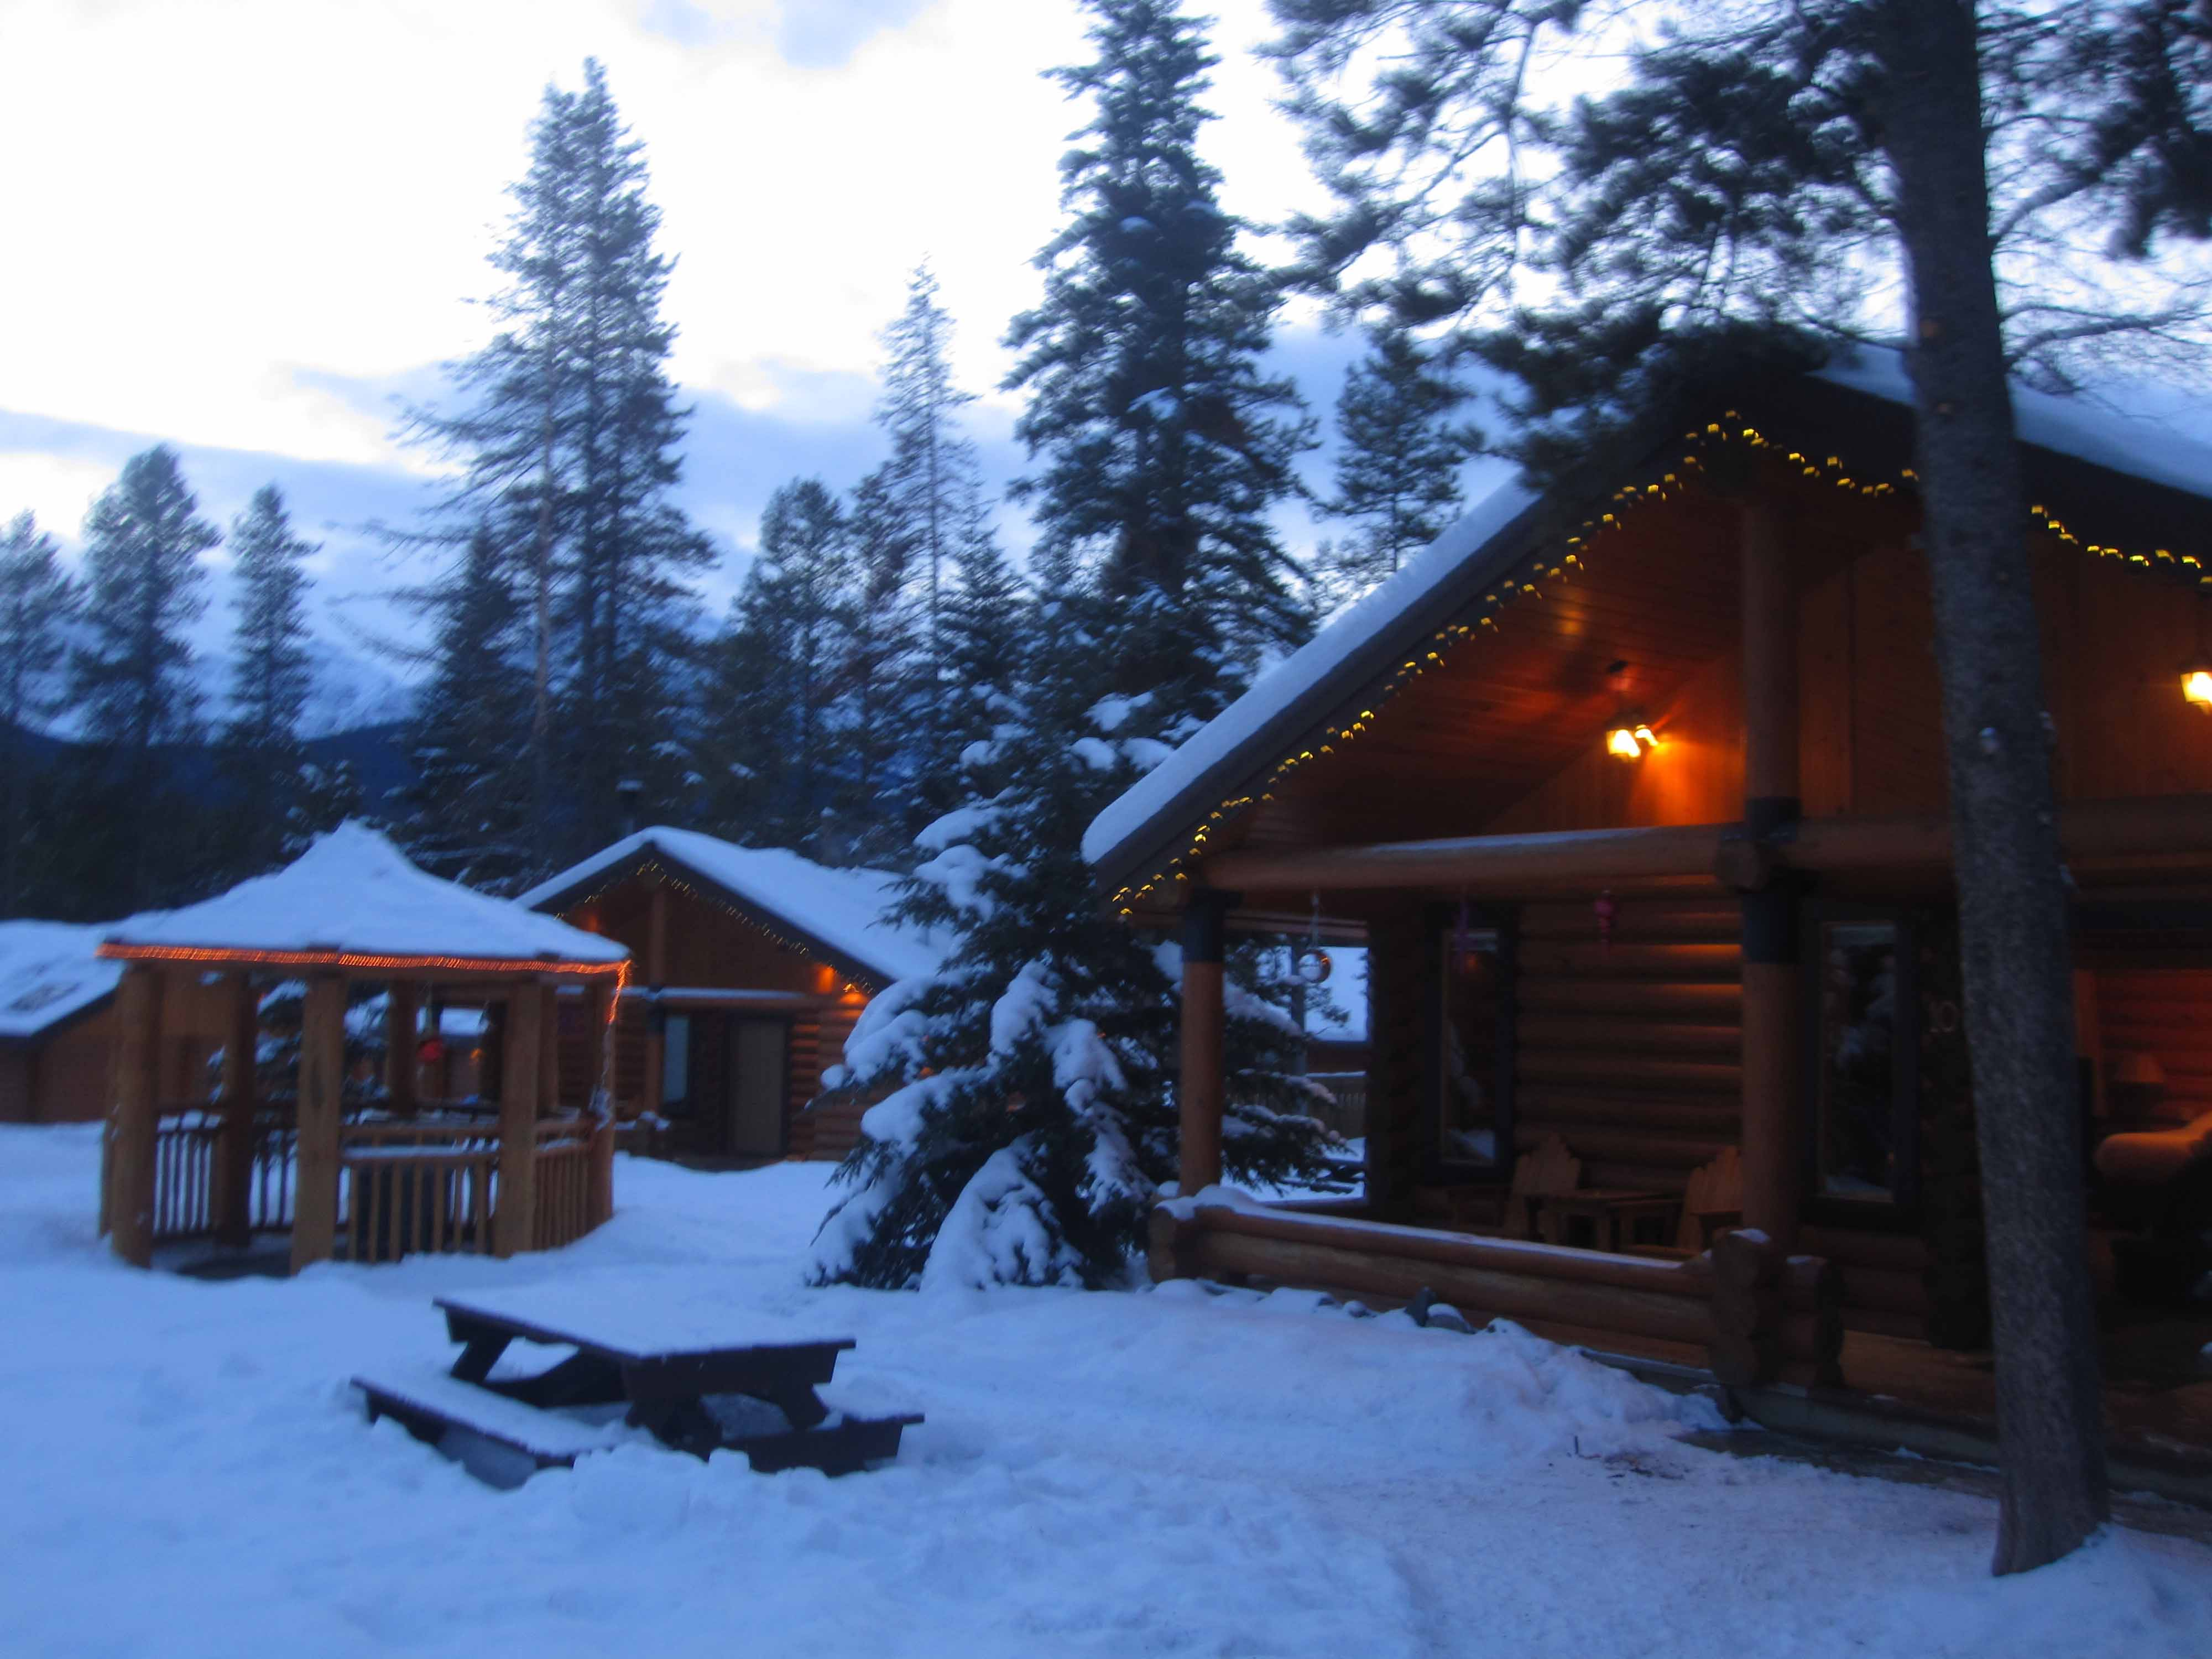 Castle Mountain Chalets offers a great stay for Lake